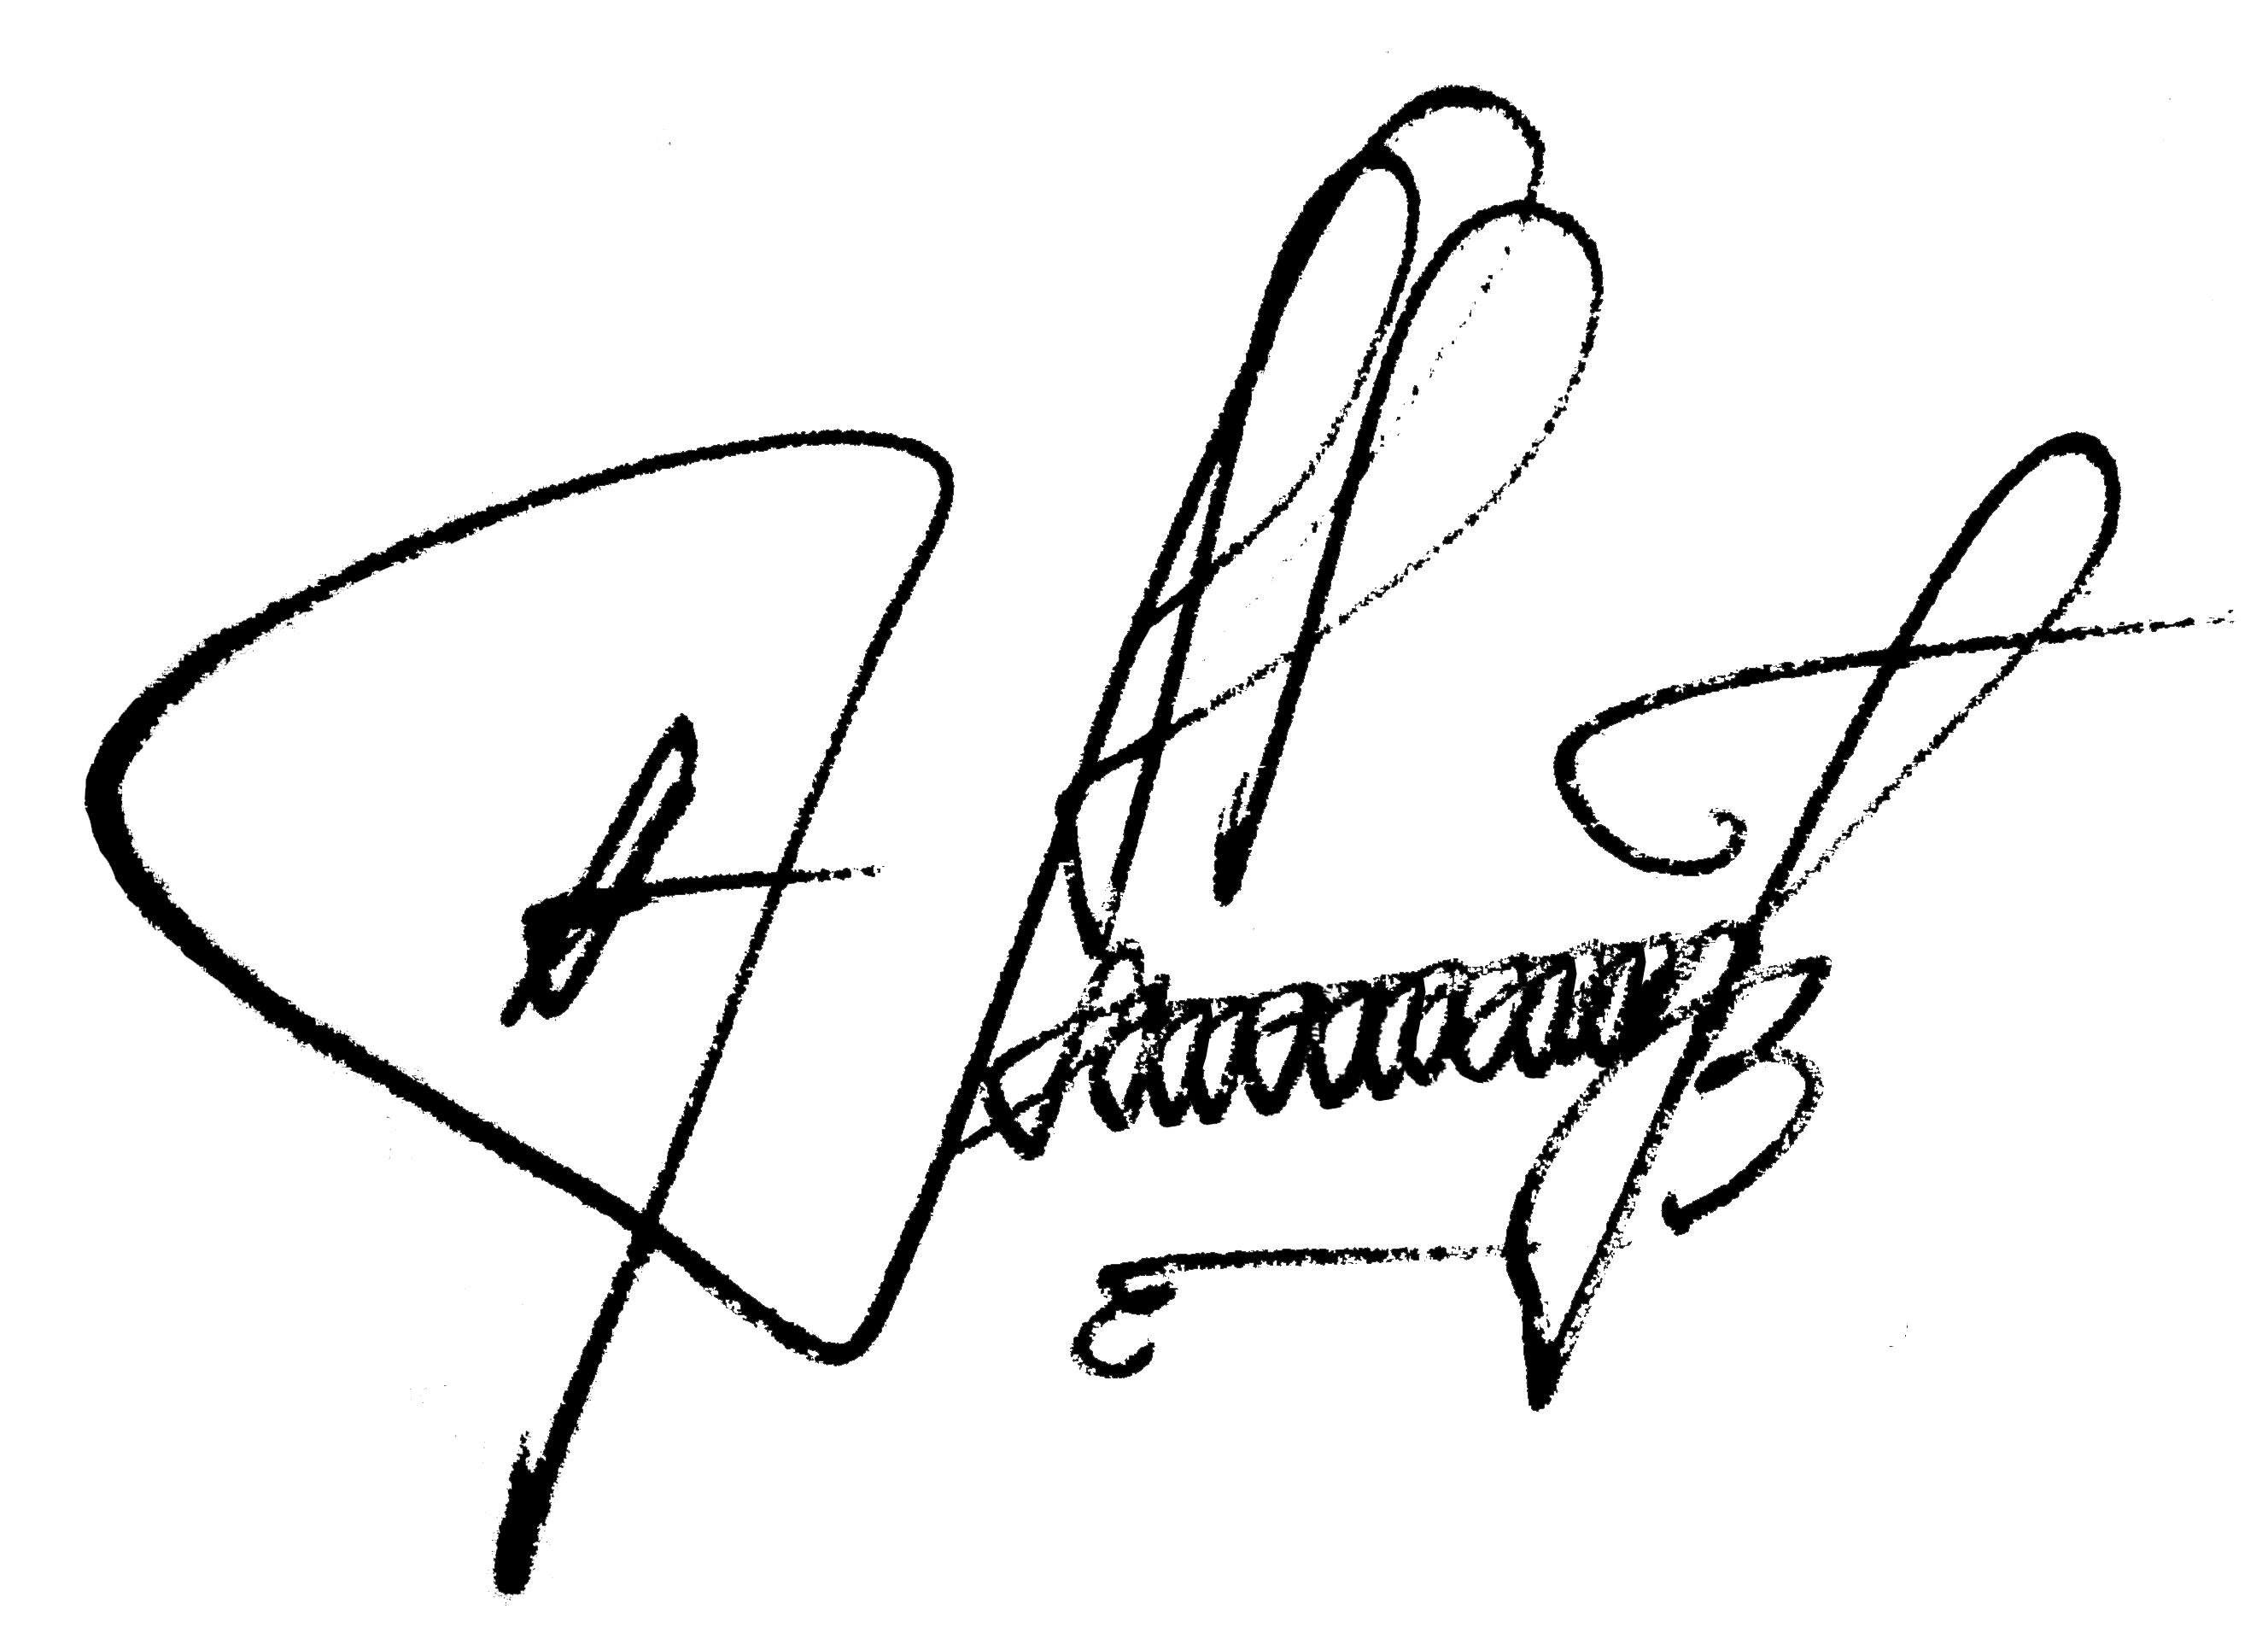 File:Mohammad Amin (signature).png.